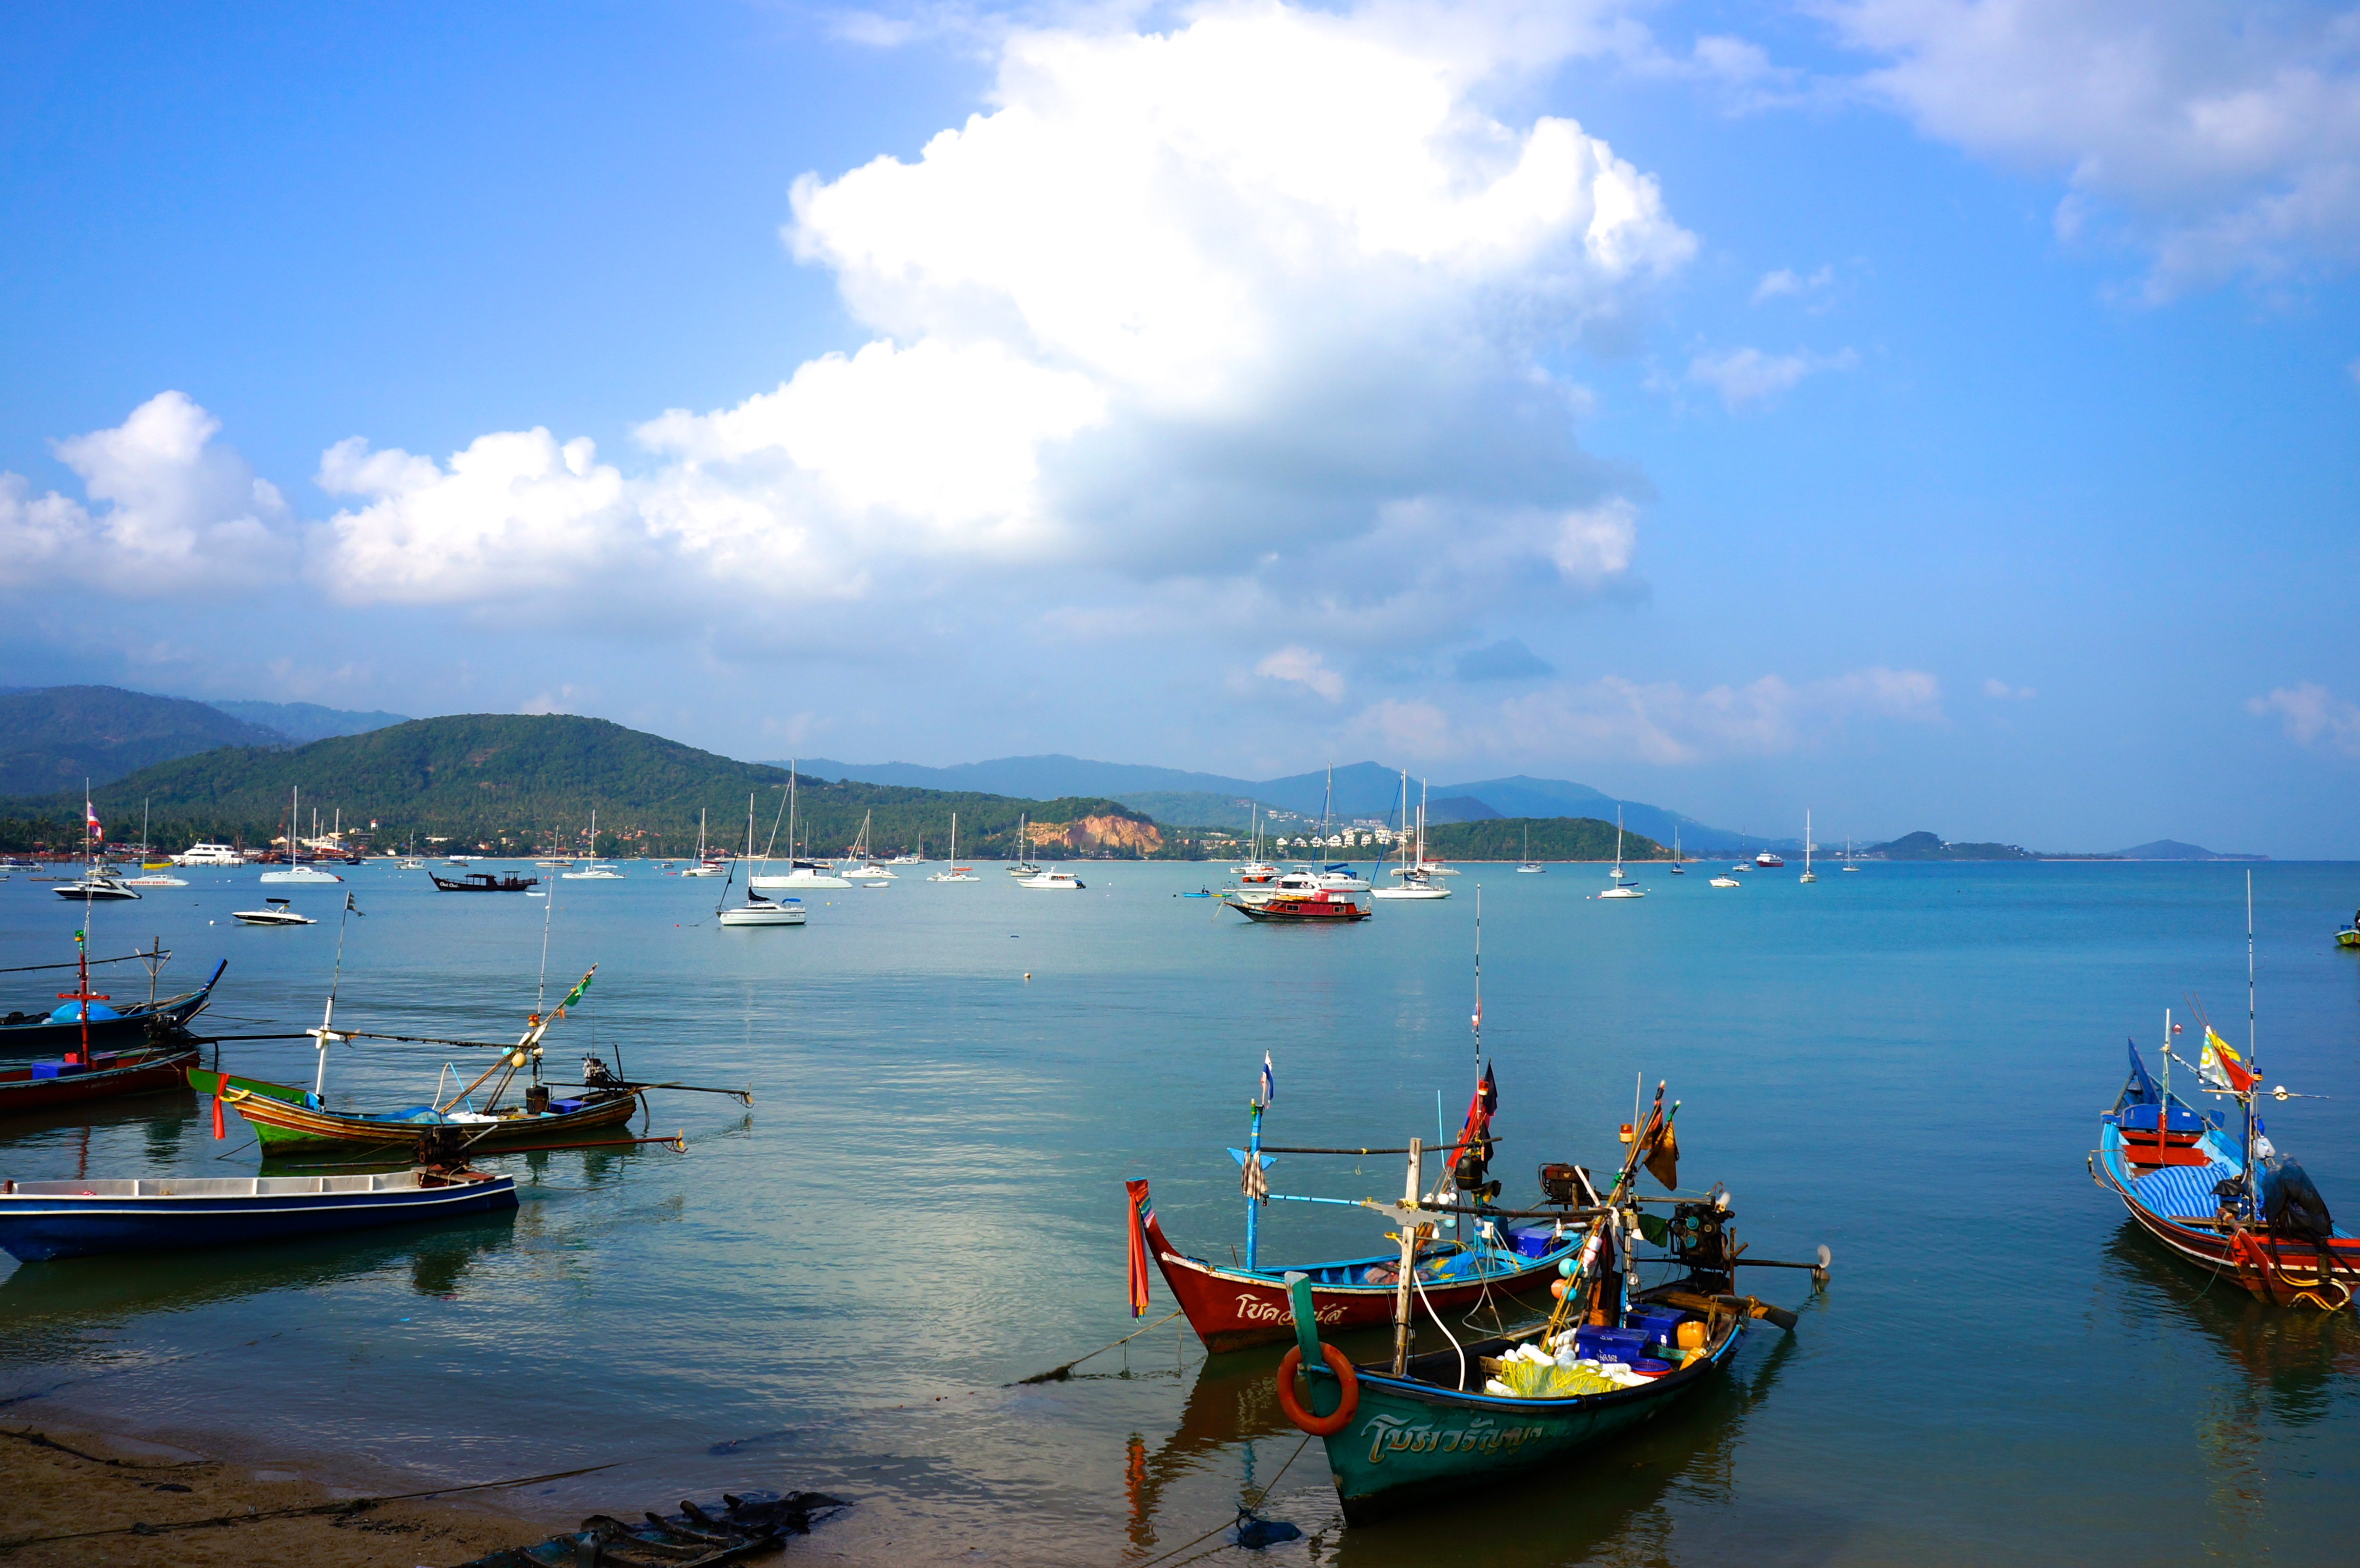 Is Thailand Expensive - Koh Samui Prices